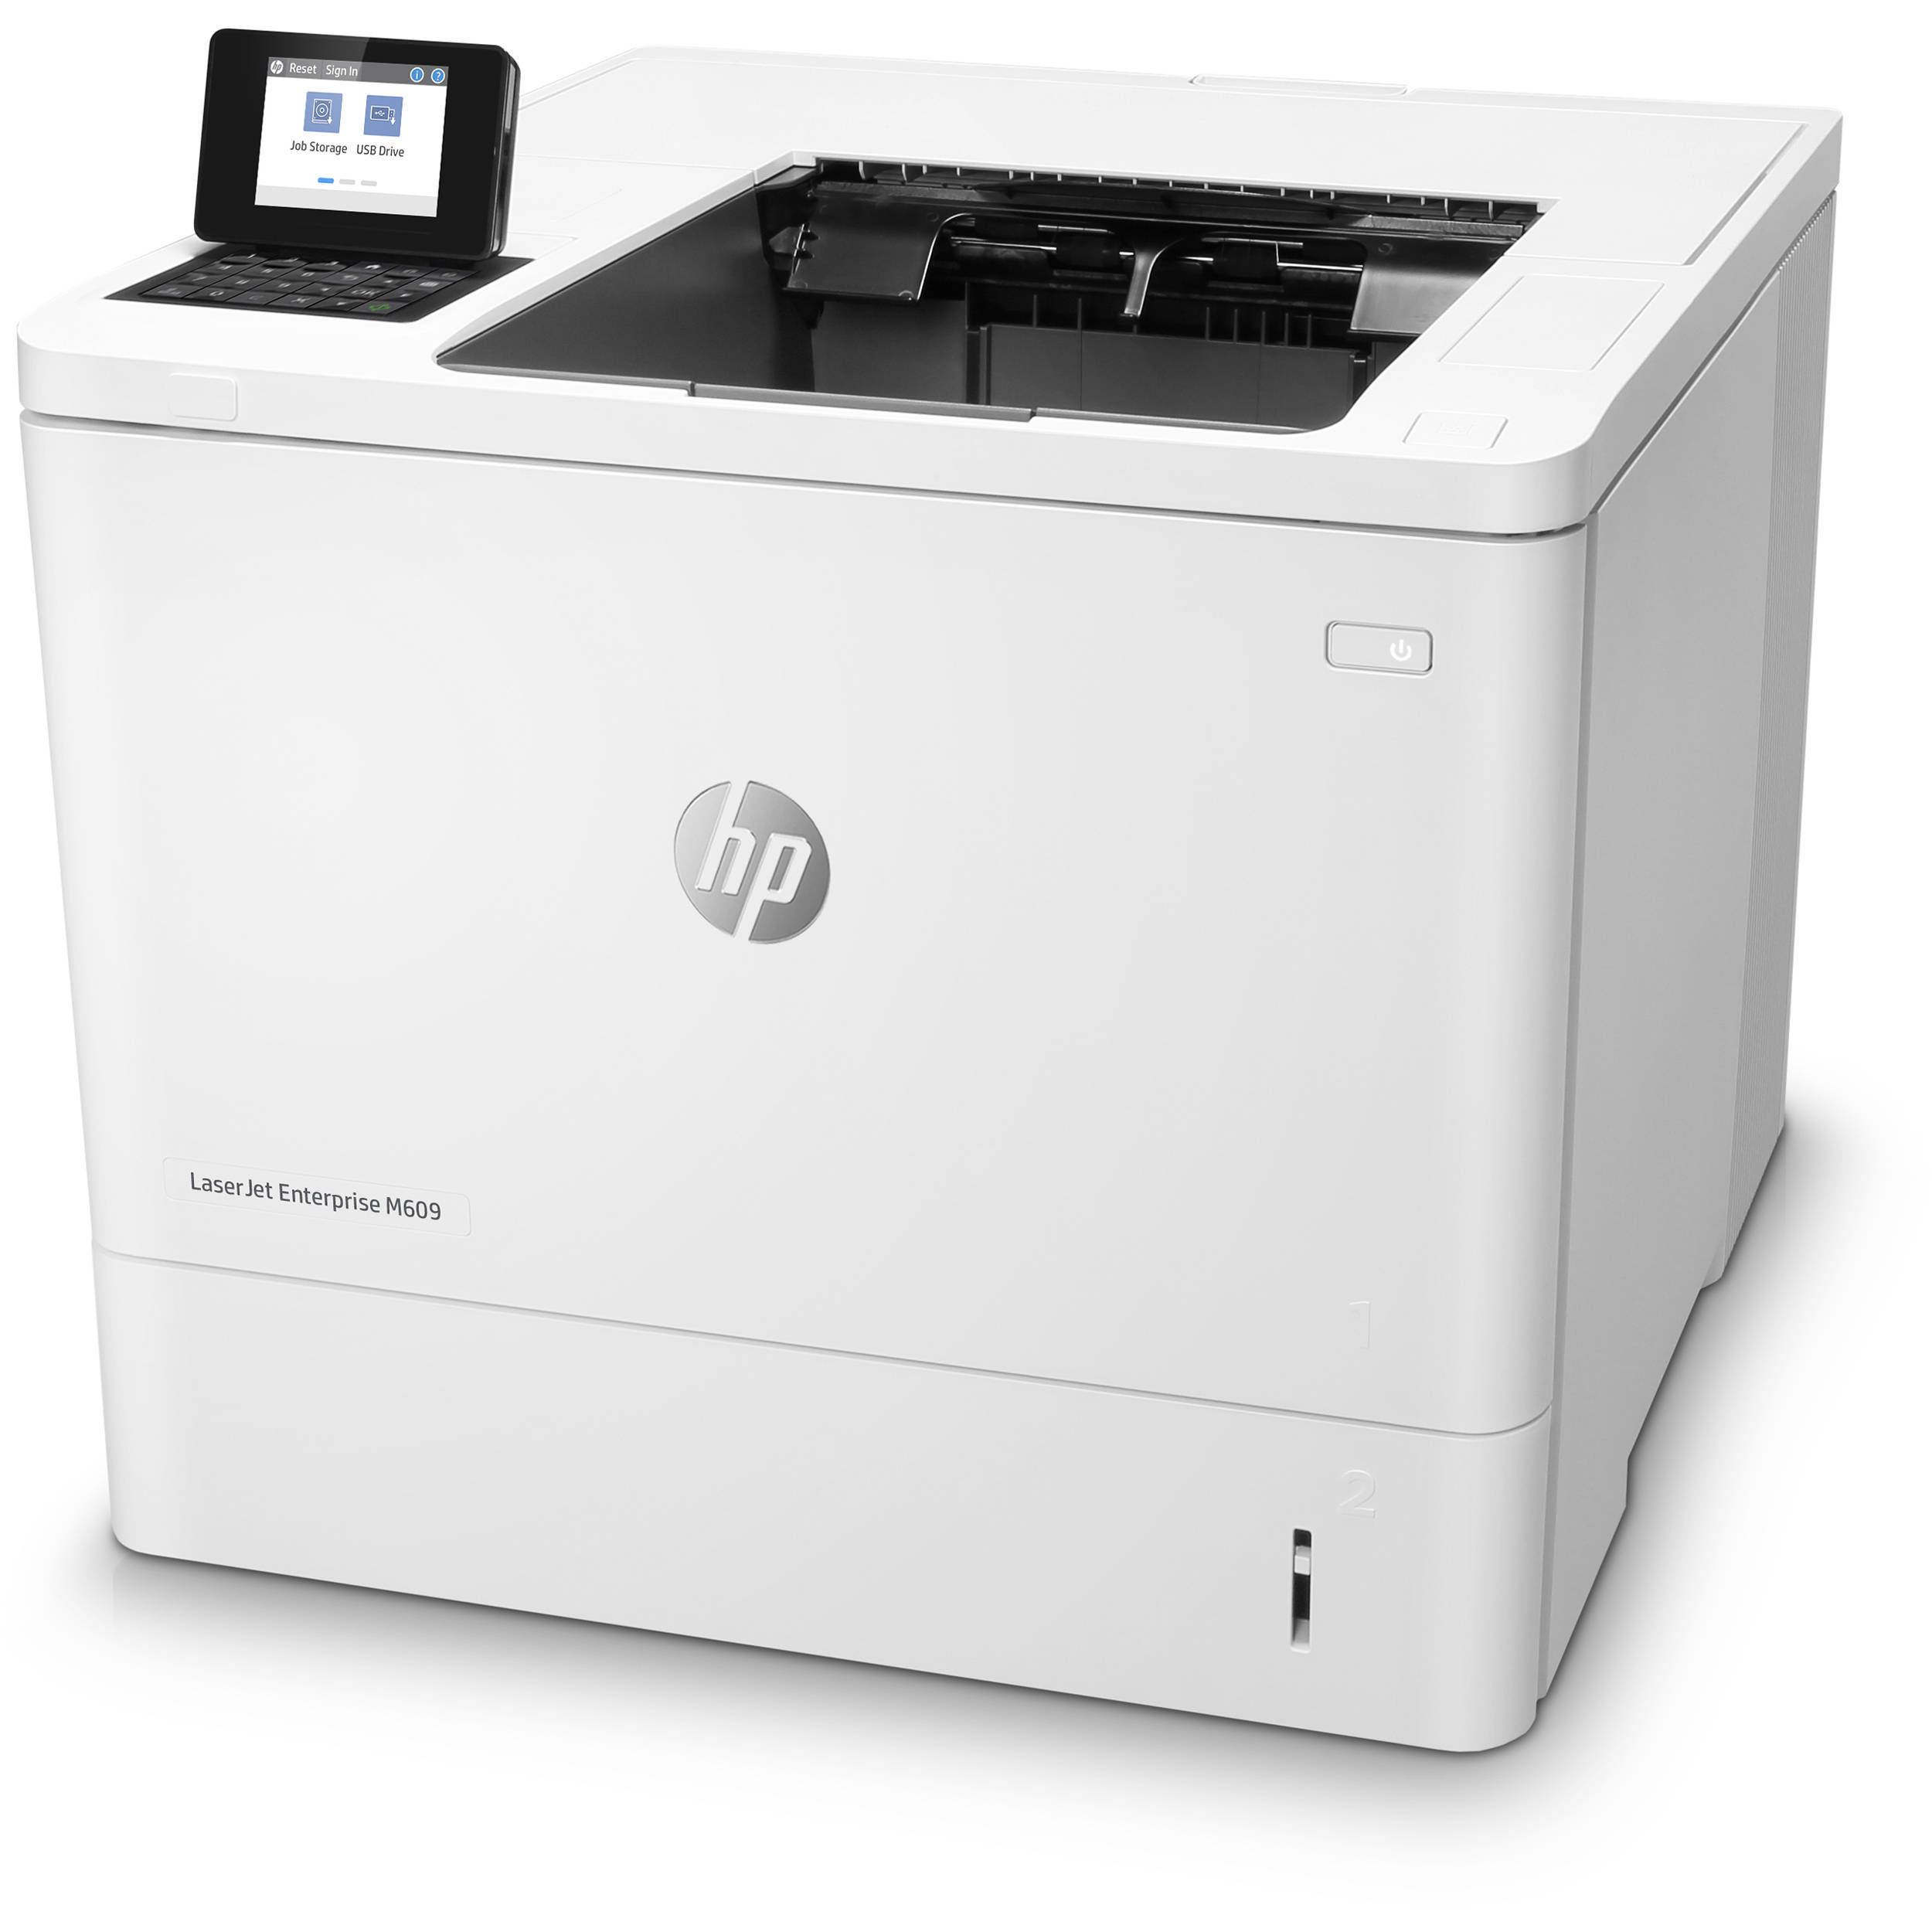 HP LaserJet Enterprise M609dn Monochrome Laser Printer